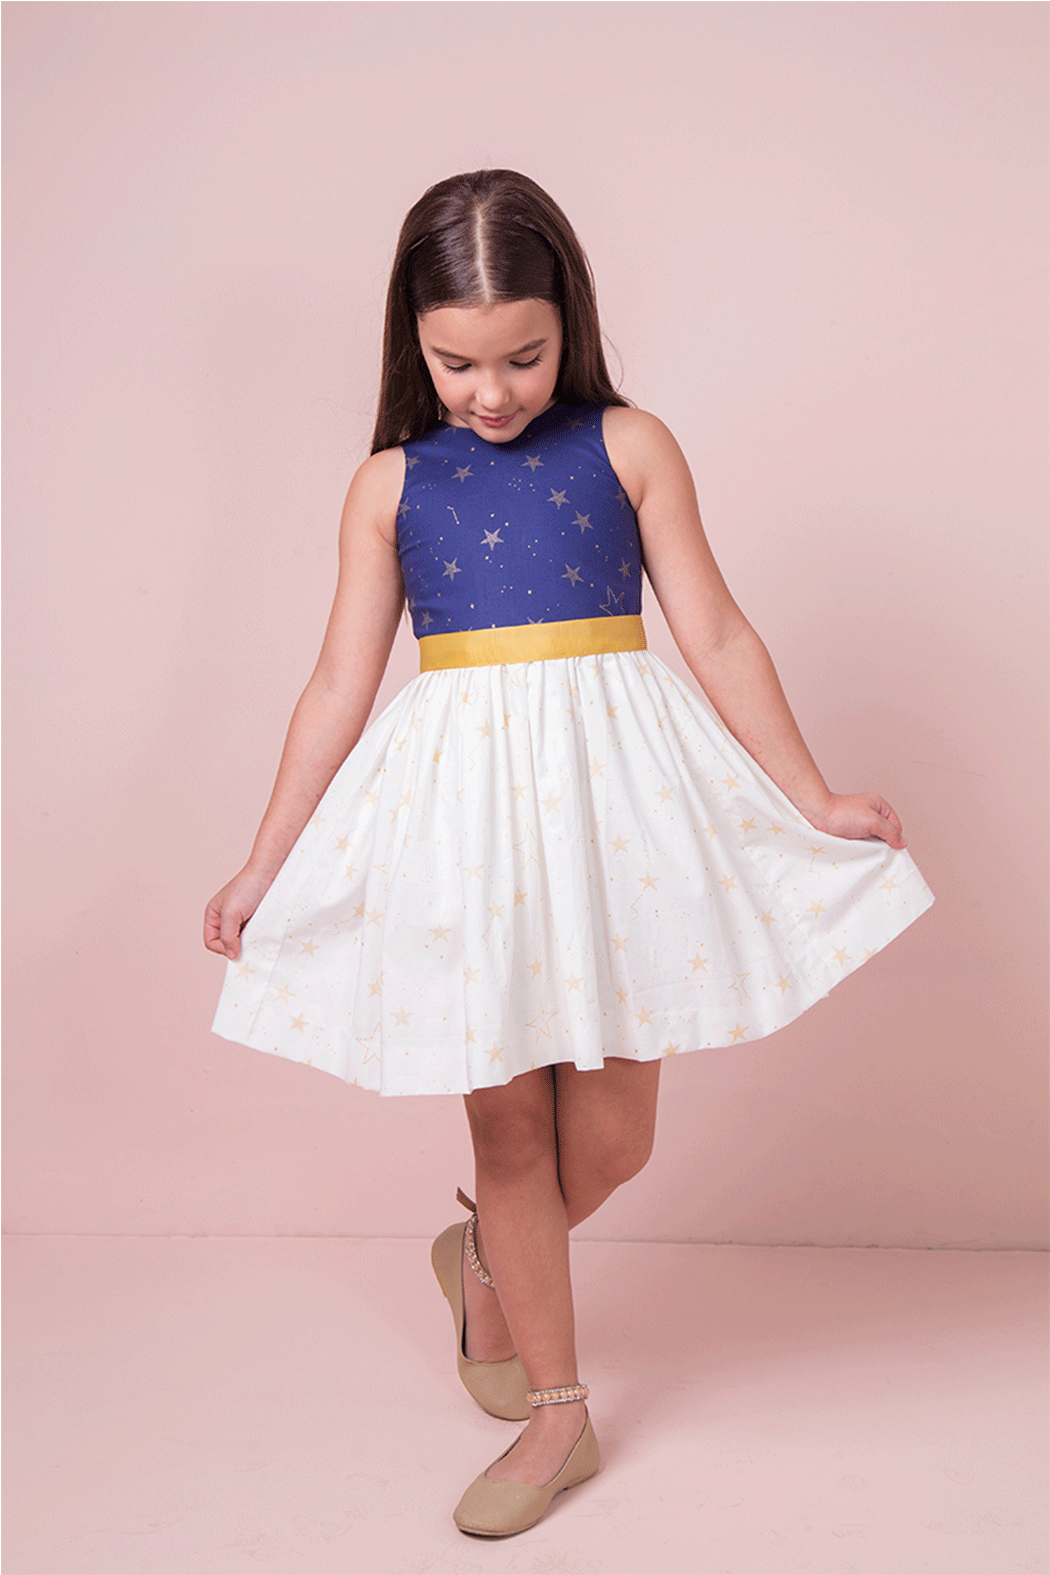 Mandy by Gema Amanda Dress Lucky Stars Navy and White - Front Cropped Image